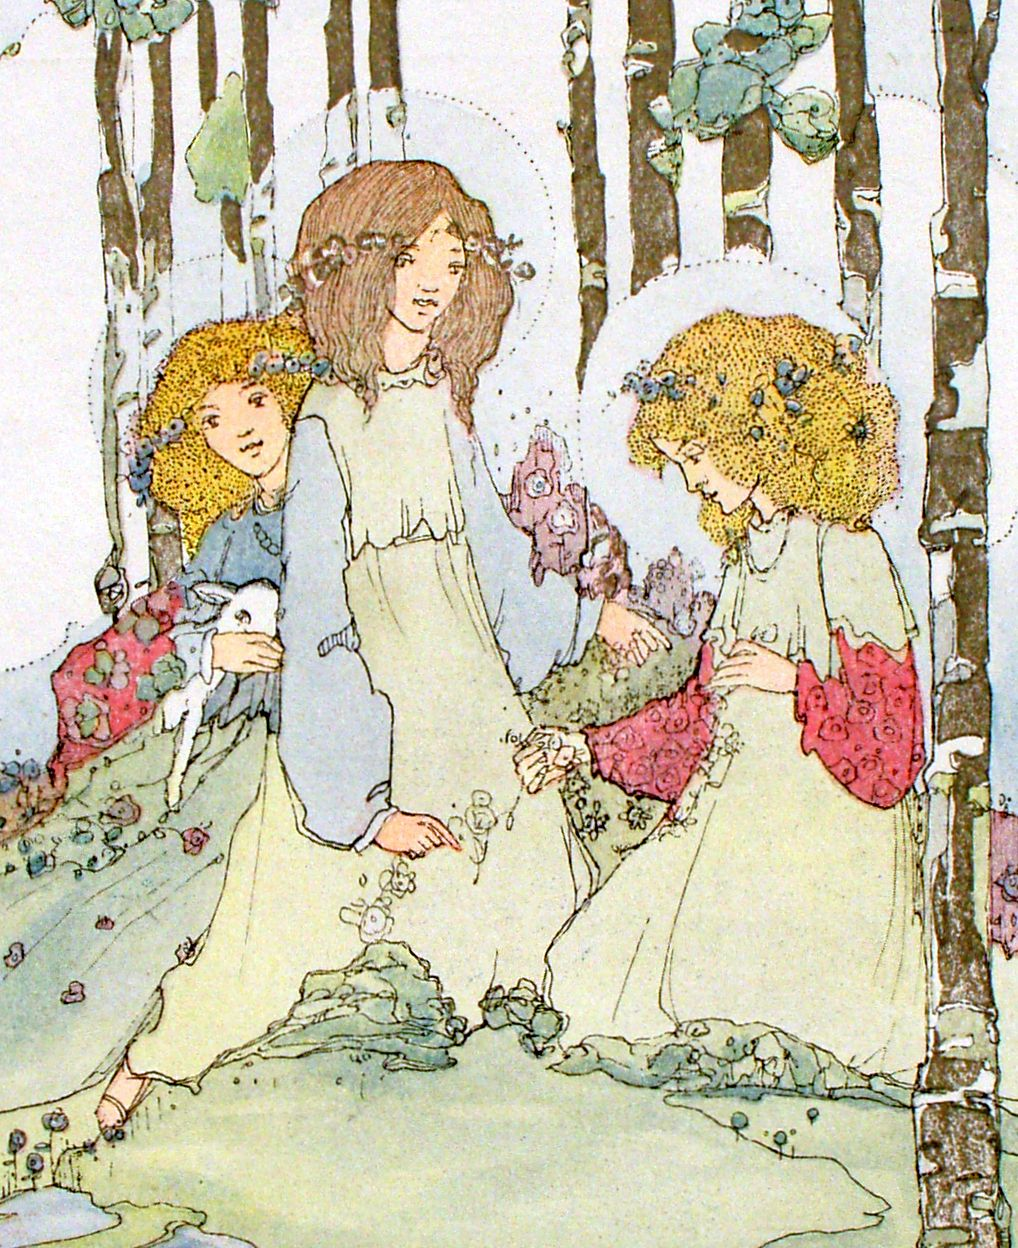 """Jessie M. King, """"The Lambs Play Always"""", illustration for """"Seven Happy Days"""", detail"""